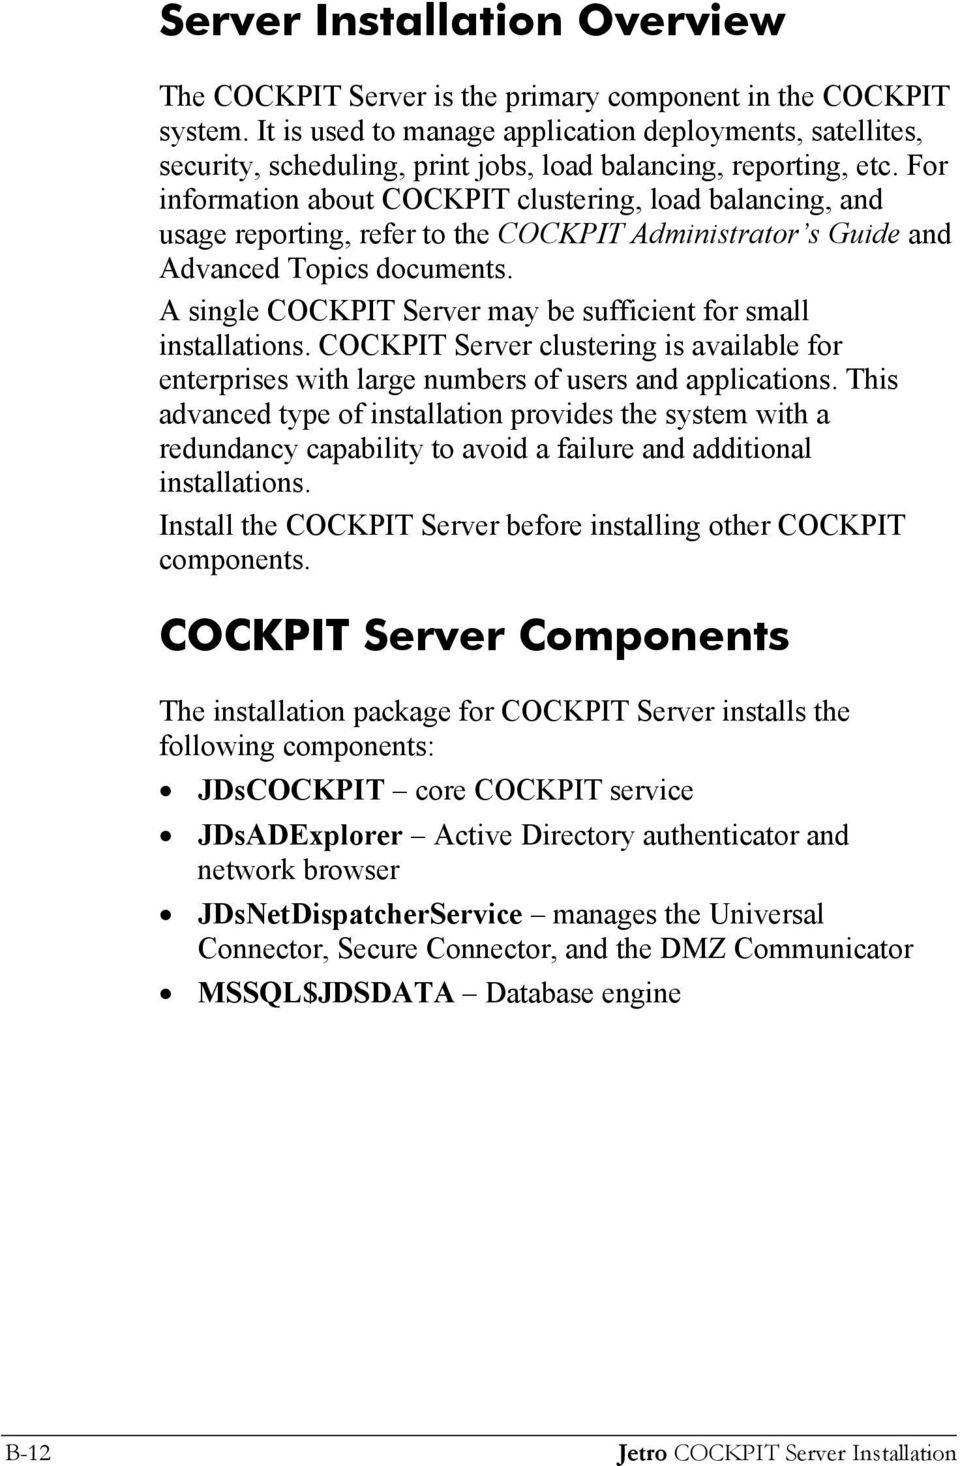 For information about COCKPIT clustering, load balancing, and usage reporting, refer to the COCKPIT Administrator s Guide and Advanced Topics documents.